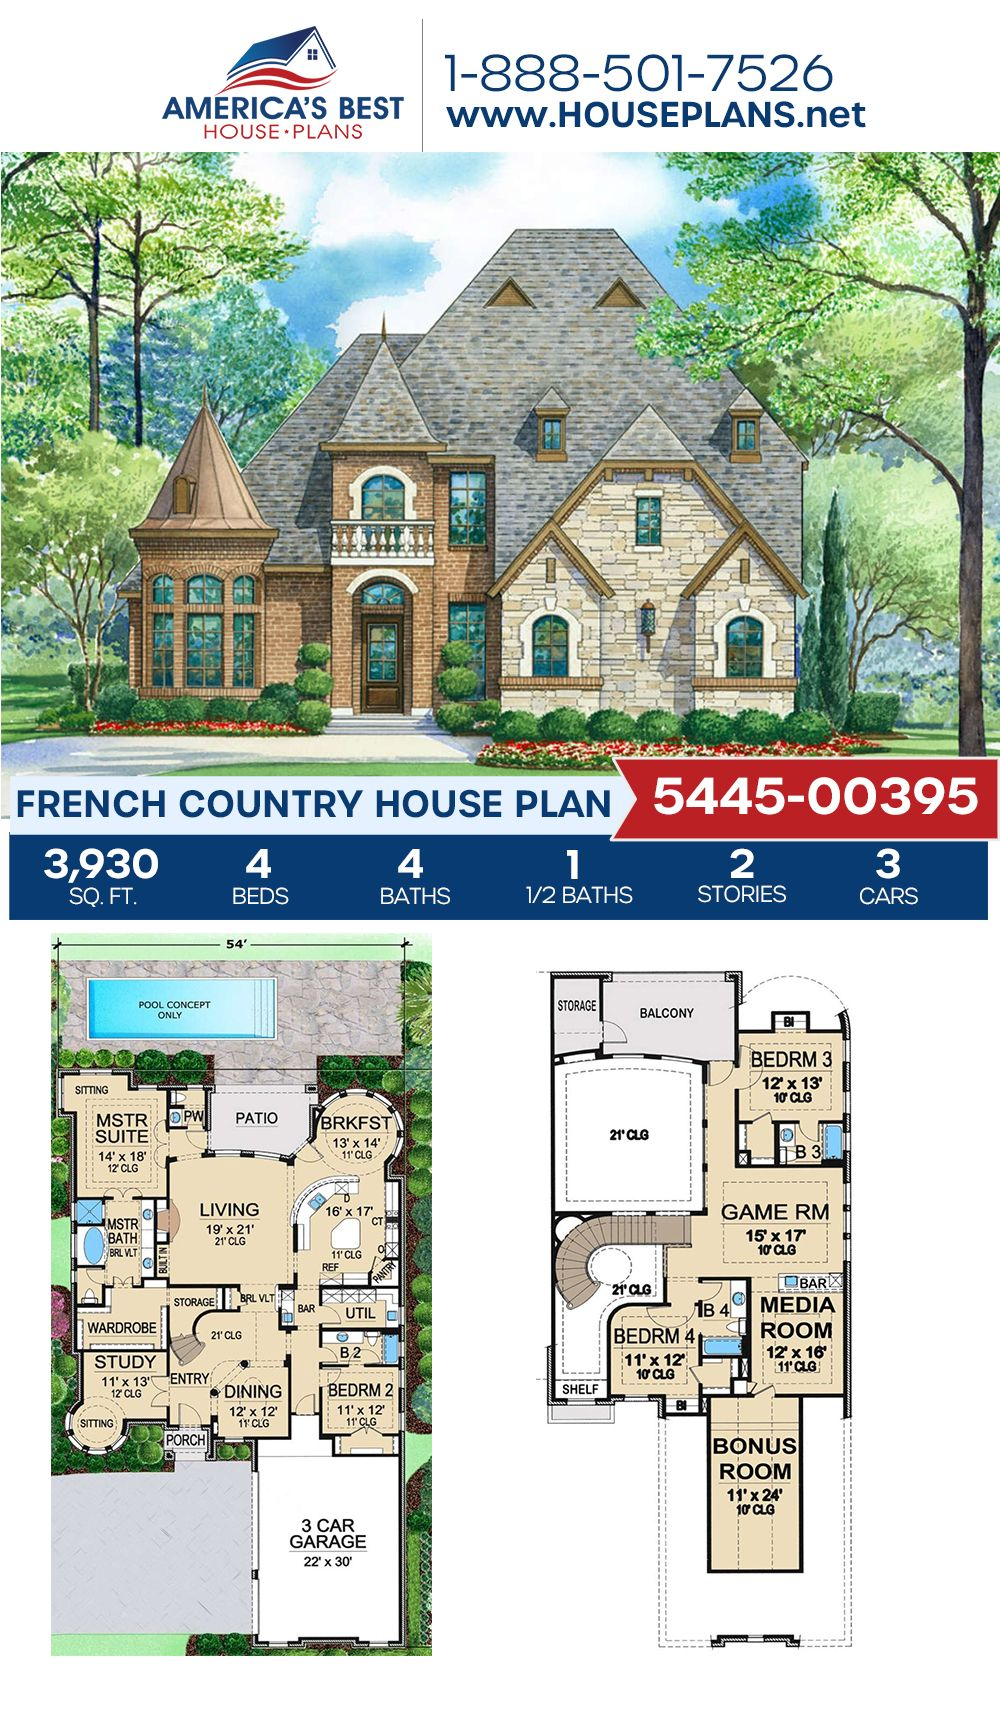 House Plan 5445 00395 French Country Plan 3 930 Square Feet 4 Bedrooms 4 5 Bathrooms French Country House French Country House Plans Country House Plan